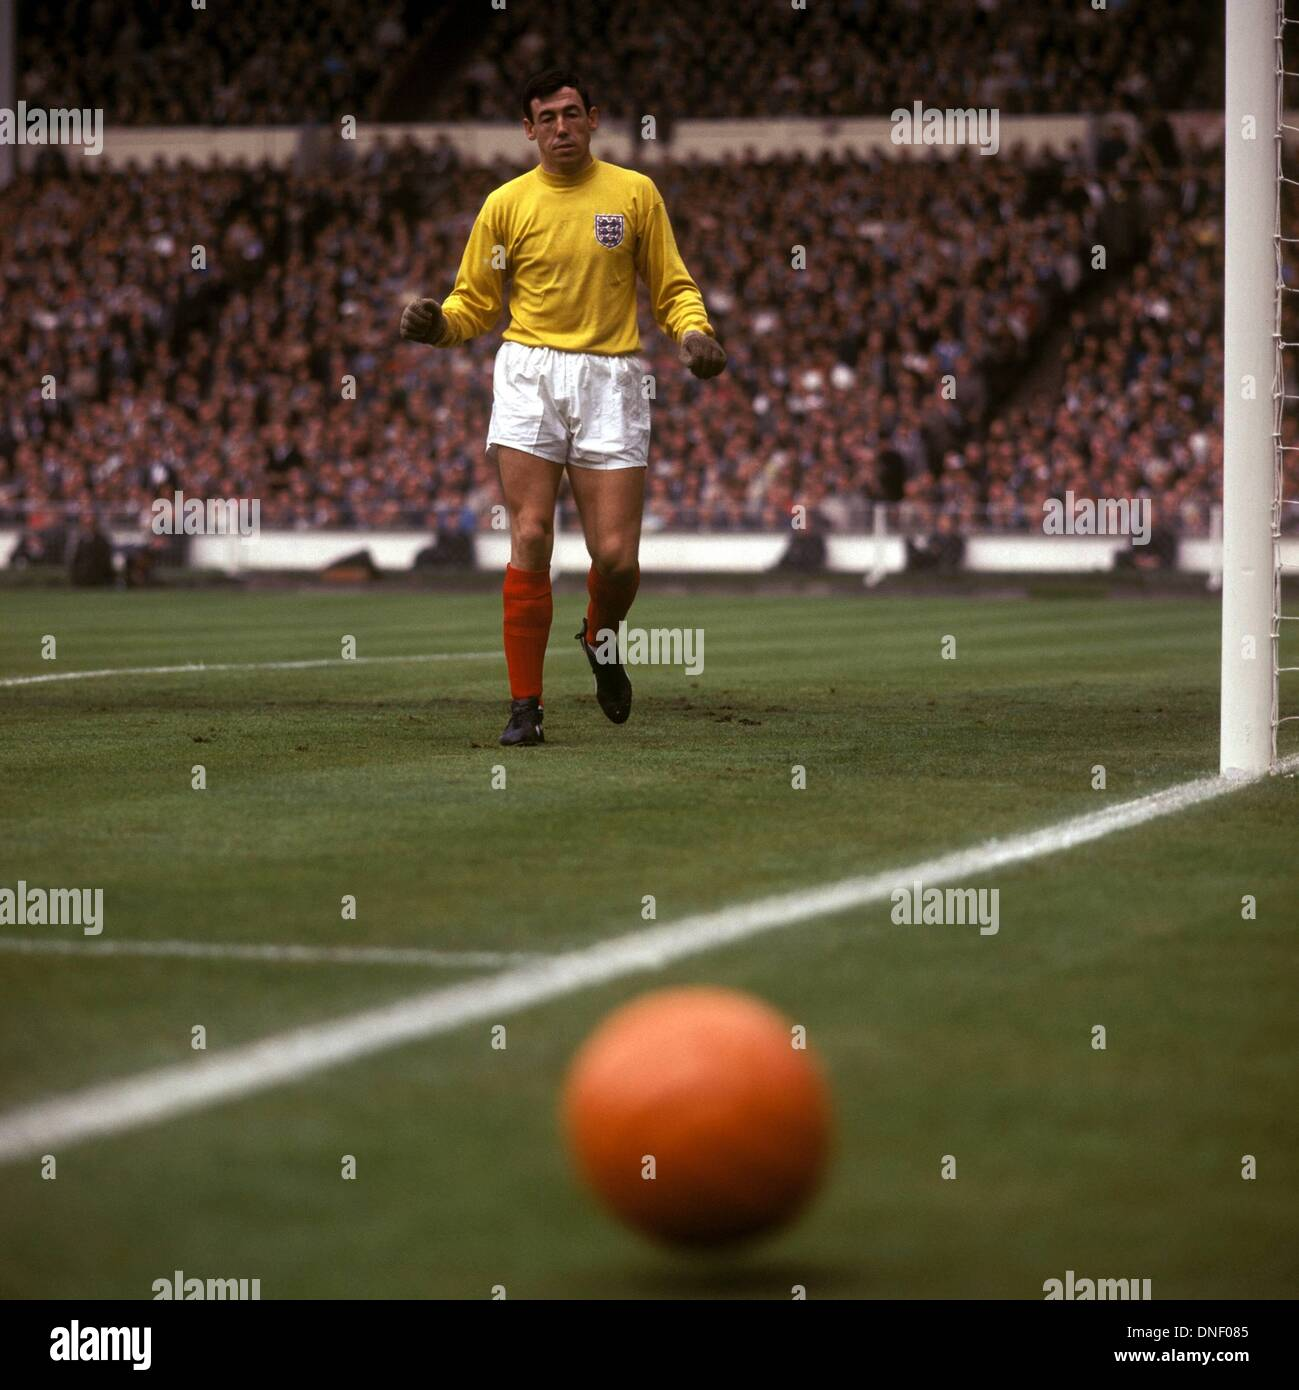 30.07.1966. Wembley Stadium, London, England. Goalkeeper Gordon Banks (England) watches the ball go wide at the 1966 London world cup final between England and germany. - Stock Image